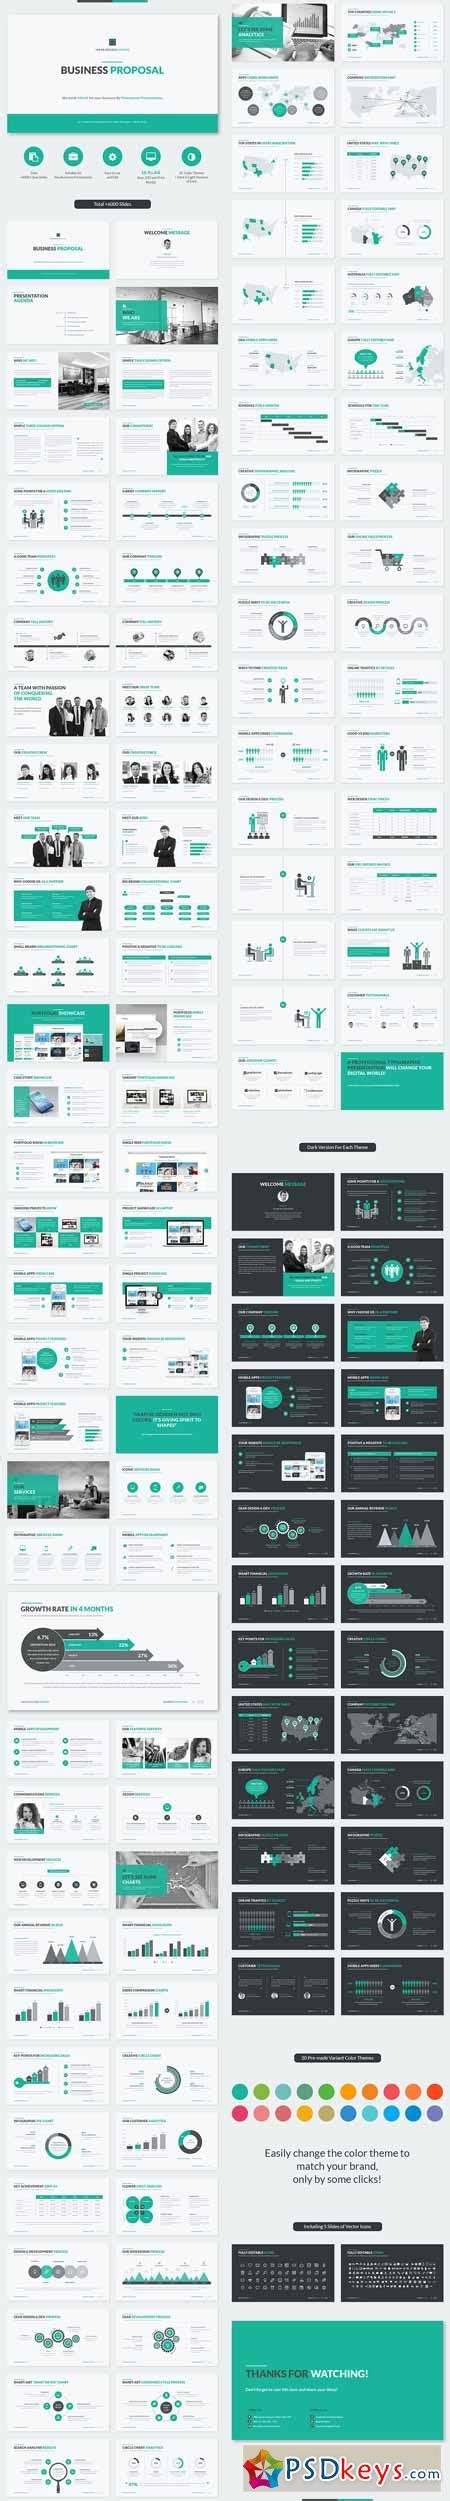 Business Proposal Powerpoint Template 11833931 187 Free Download Photoshop Vector Stock Image Via Powerpoint Templates Torrent